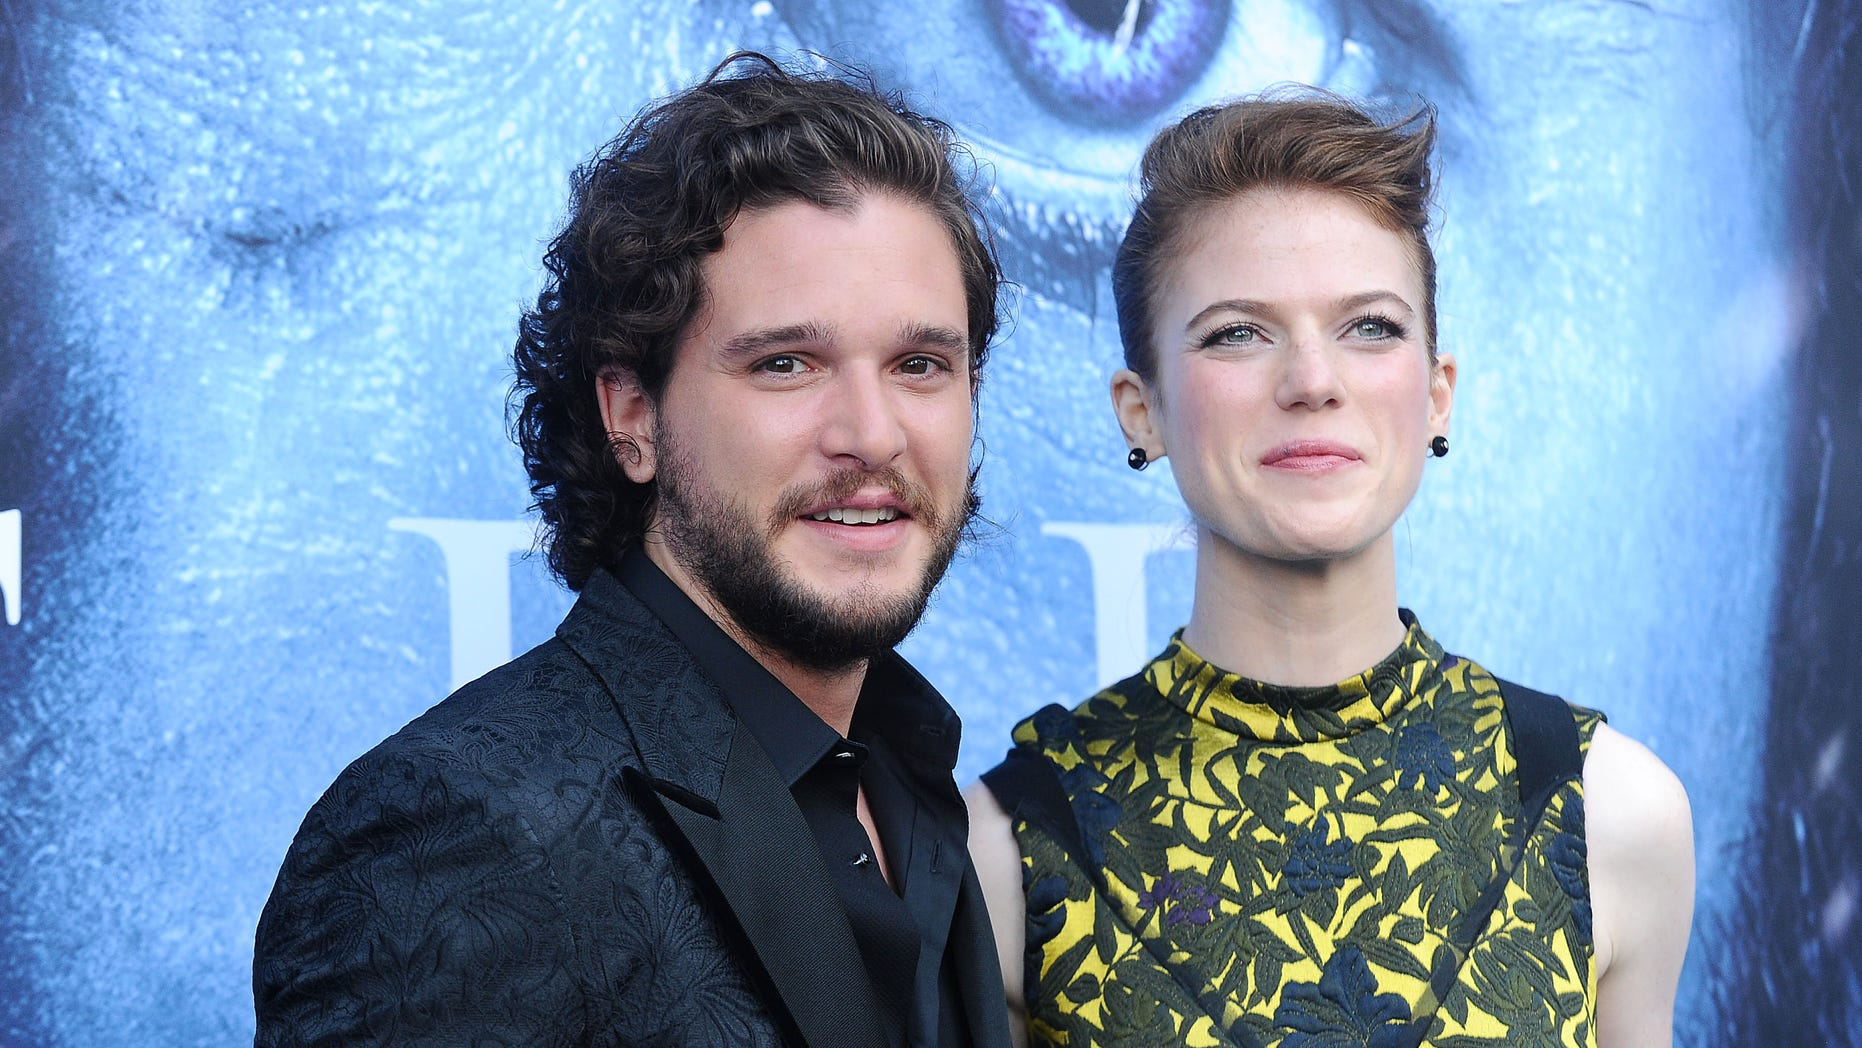 Kit Harington Responds to Model's Cheating Claim & Alleged Photo Leak